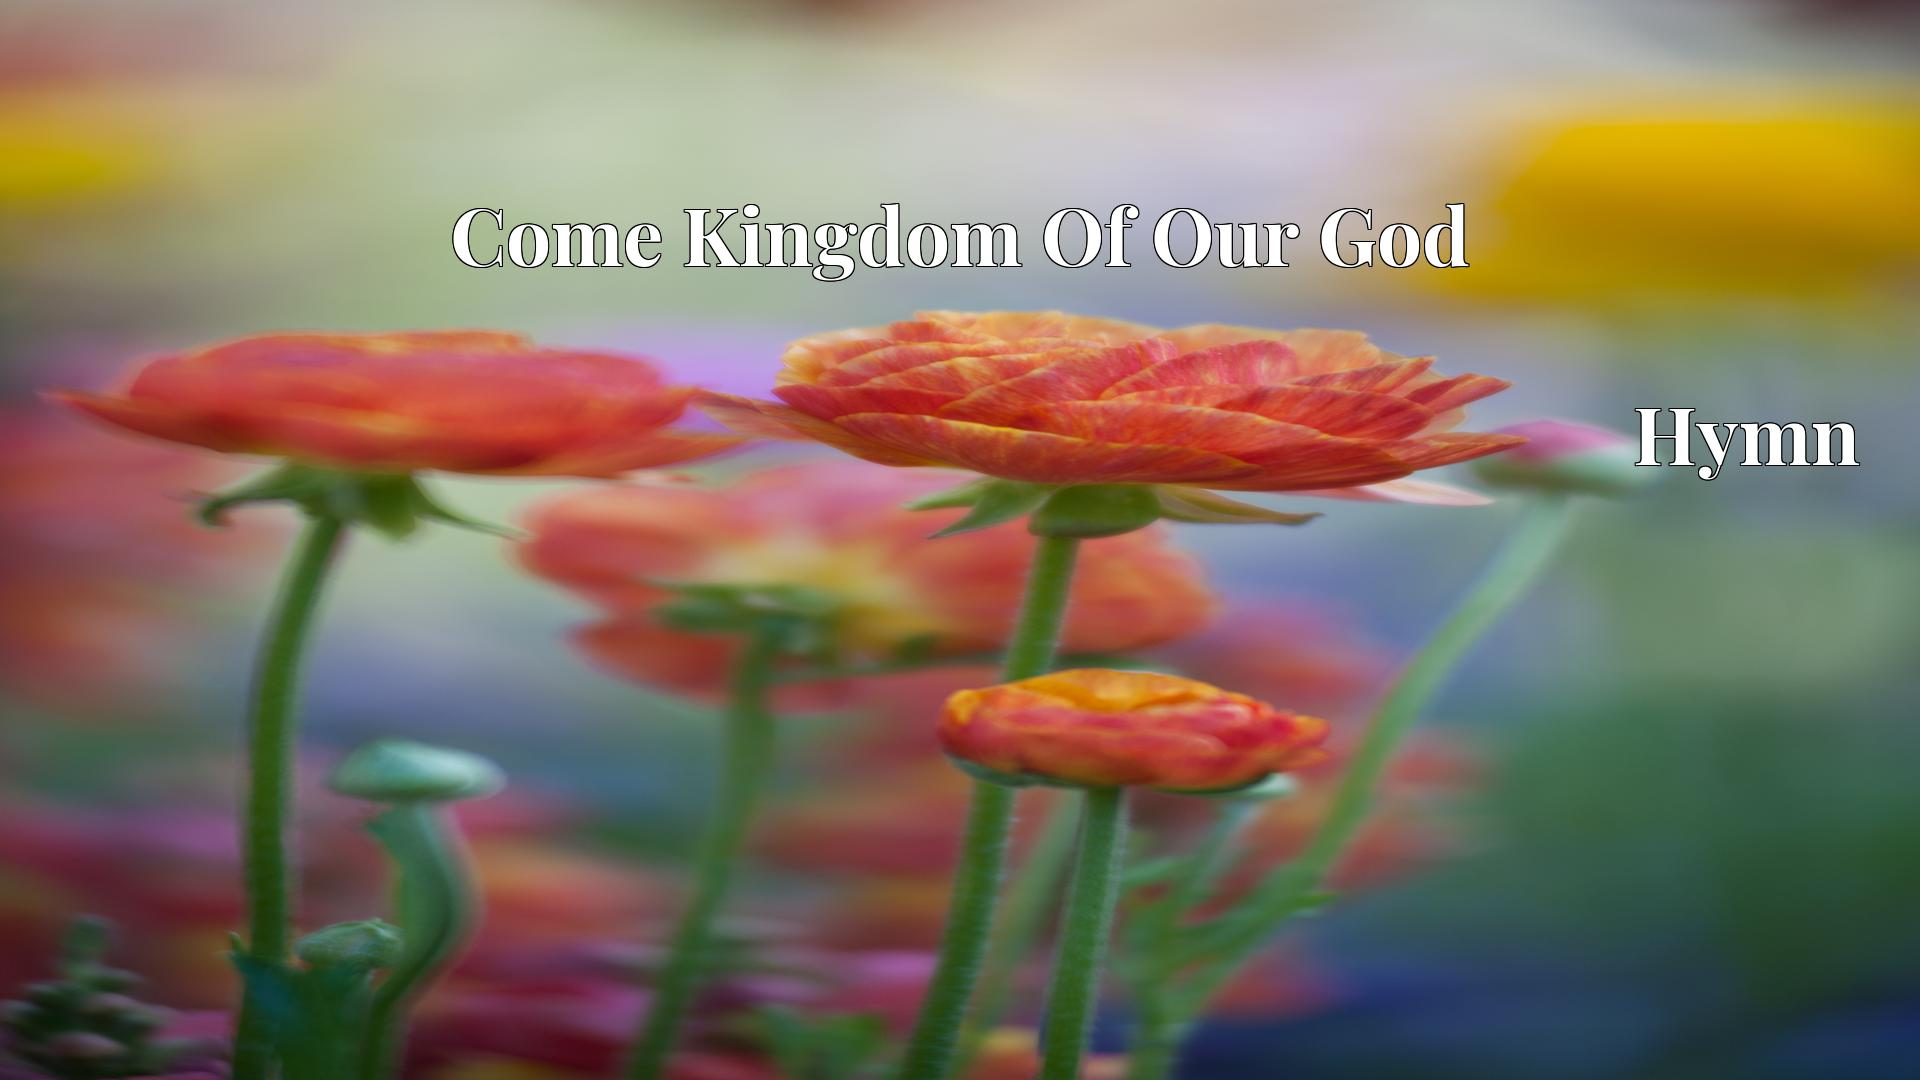 Come Kingdom Of Our God - Hymn